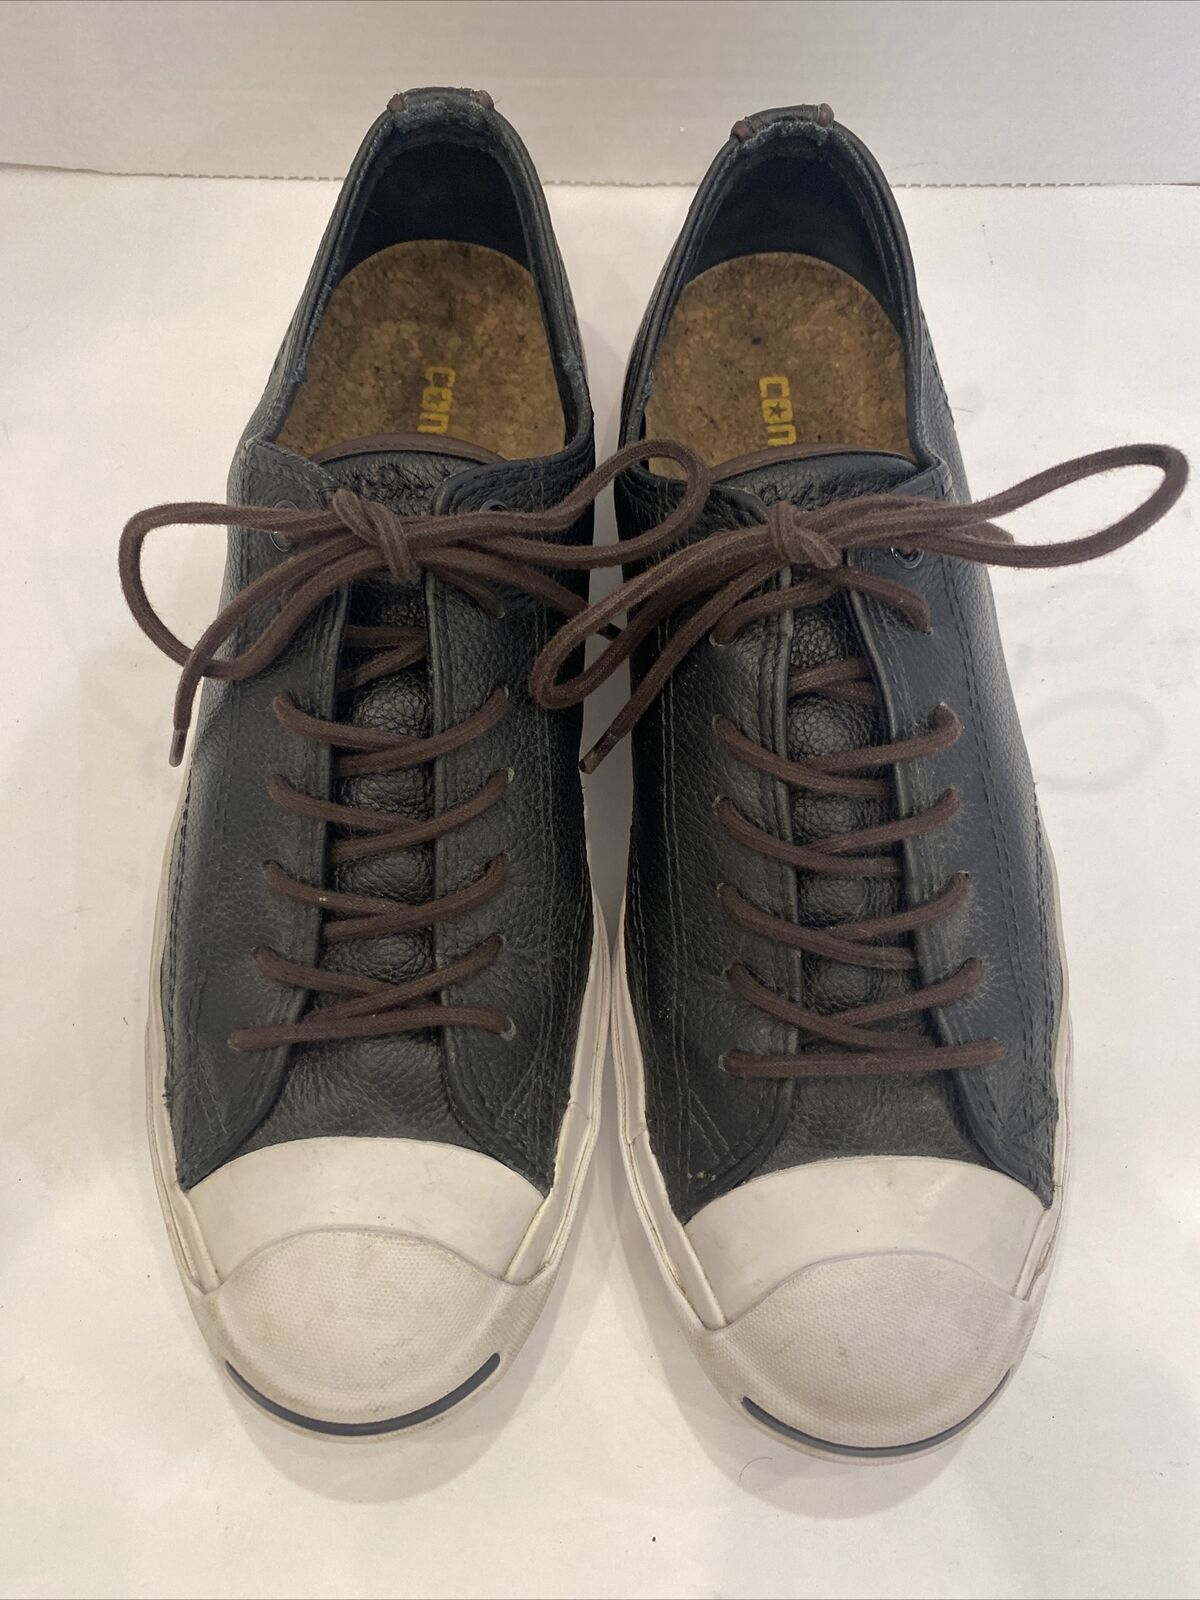 Converse Jack Purcell Tumbled Leather Shoes Oxford Mens Size 10.5 Women's 12